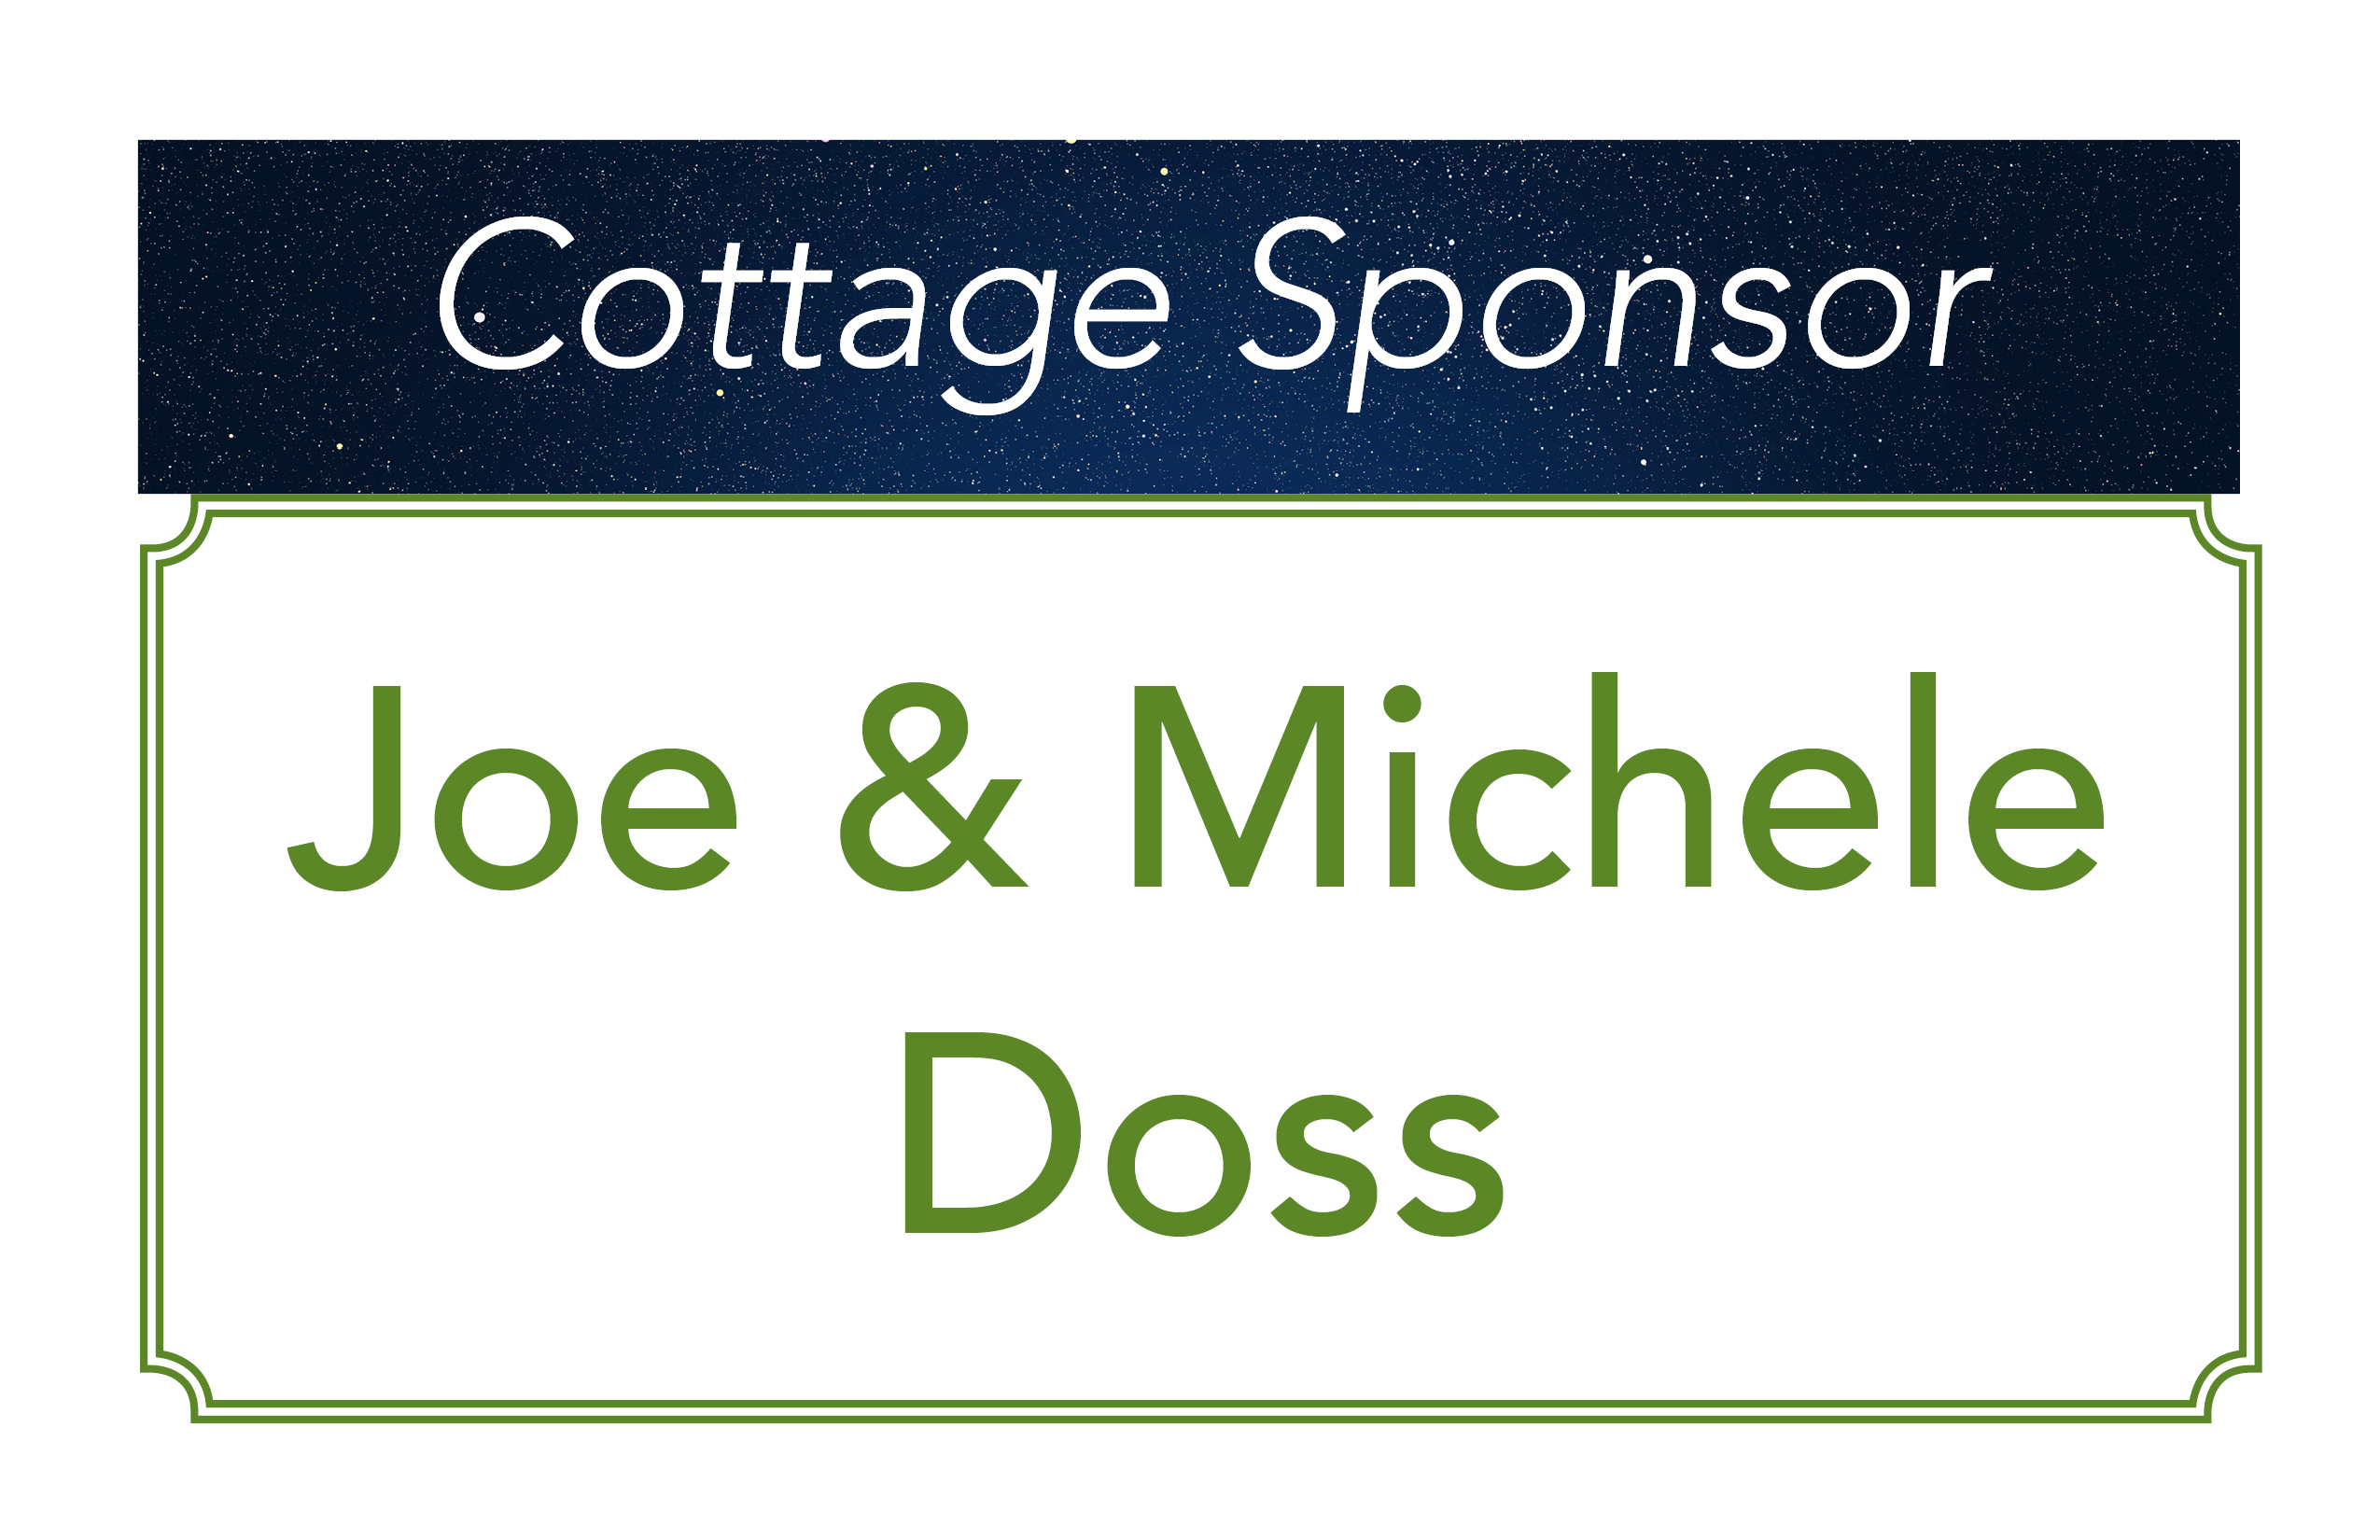 Joe and Michele Doss, Cottage Sponsor